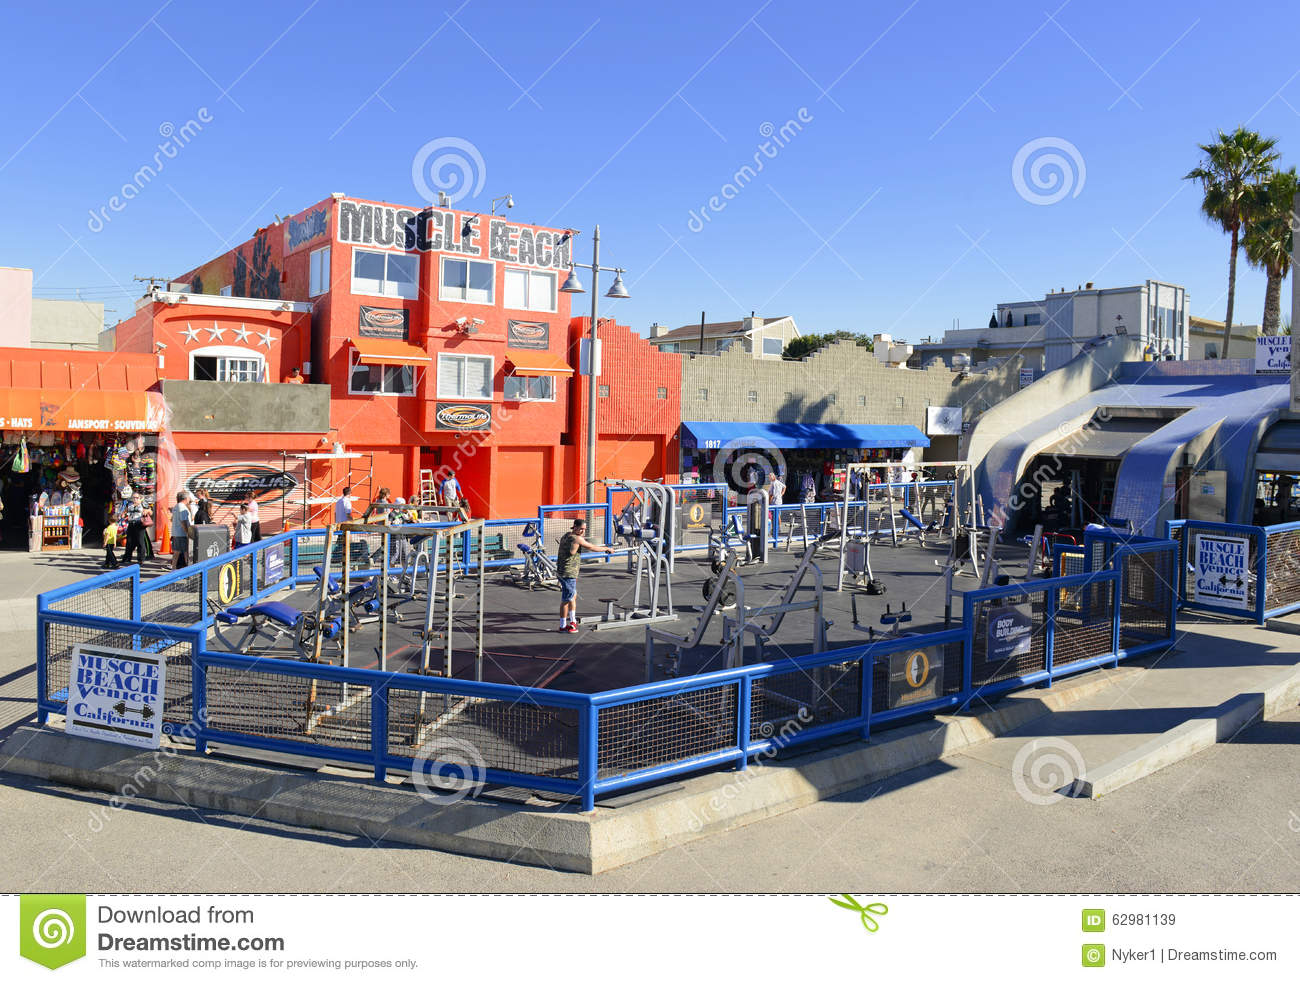 ... Weider, Muscle Beach near Los Angeles is a popular tourist attraction